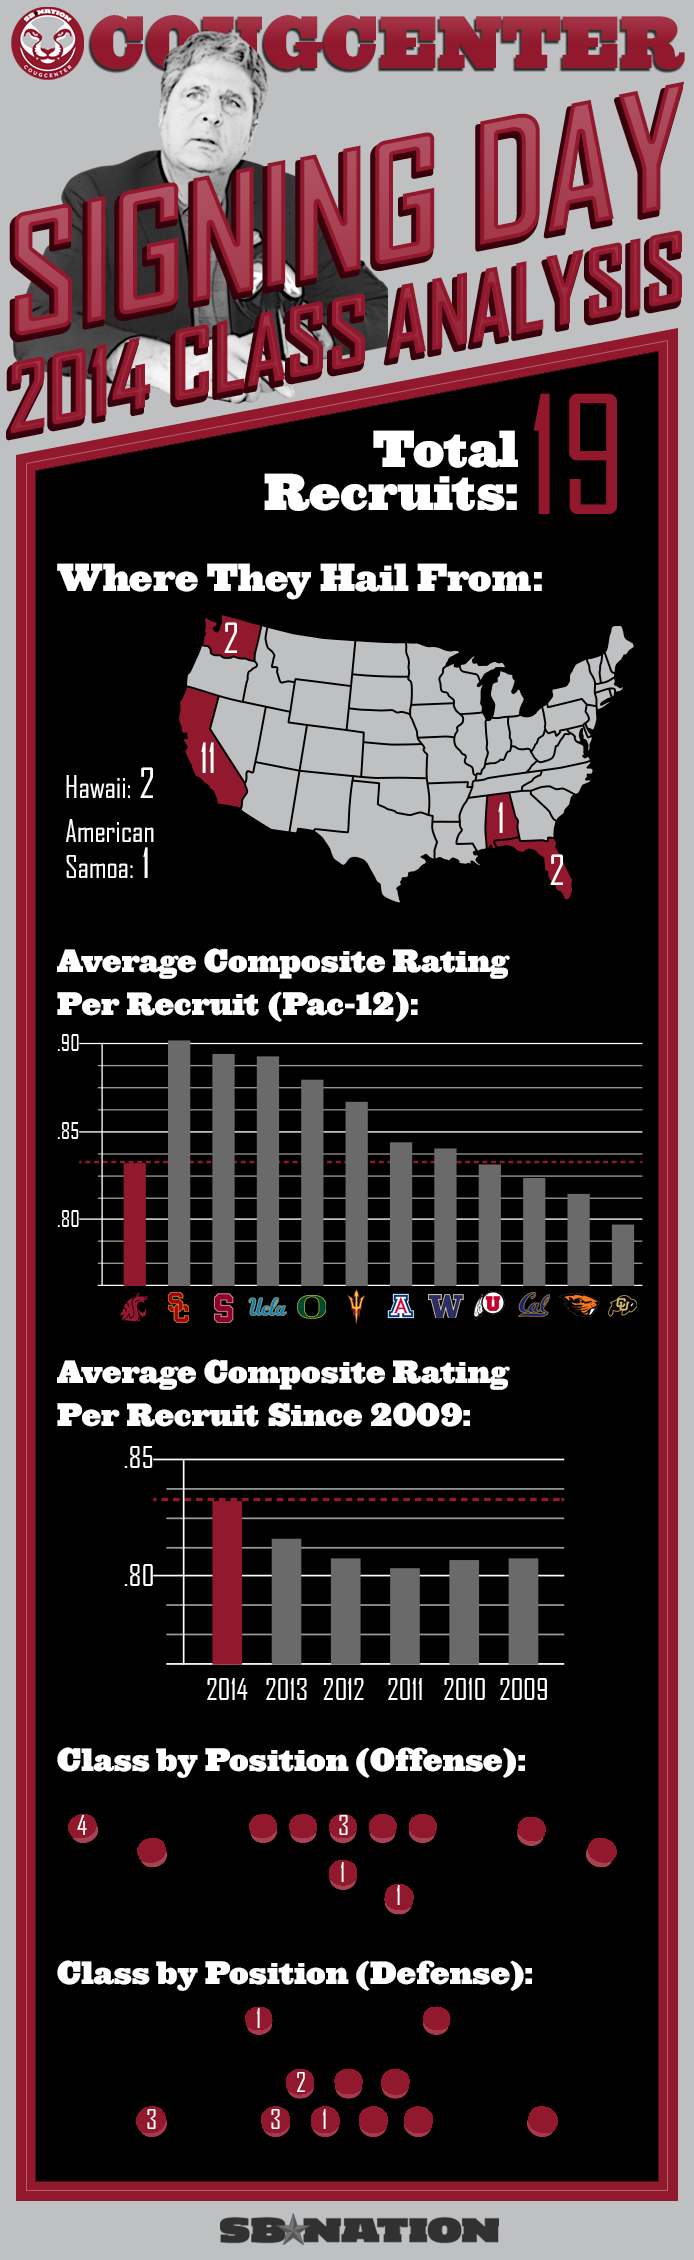 Cougcenterrecruitinginfographic2014